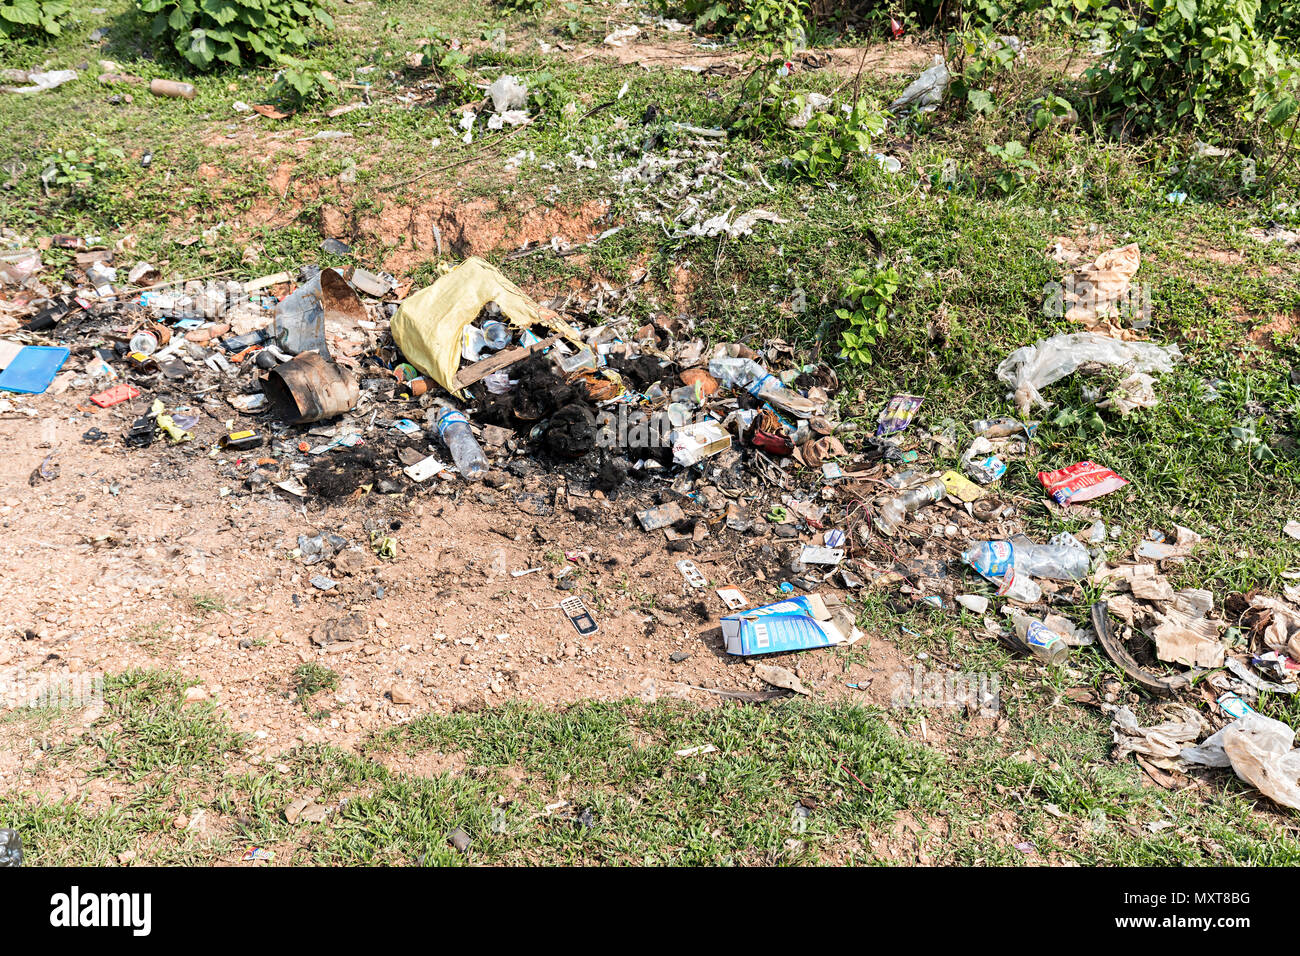 Rubbish left in ditch at side of road, Boualapha, Laos - Stock Image